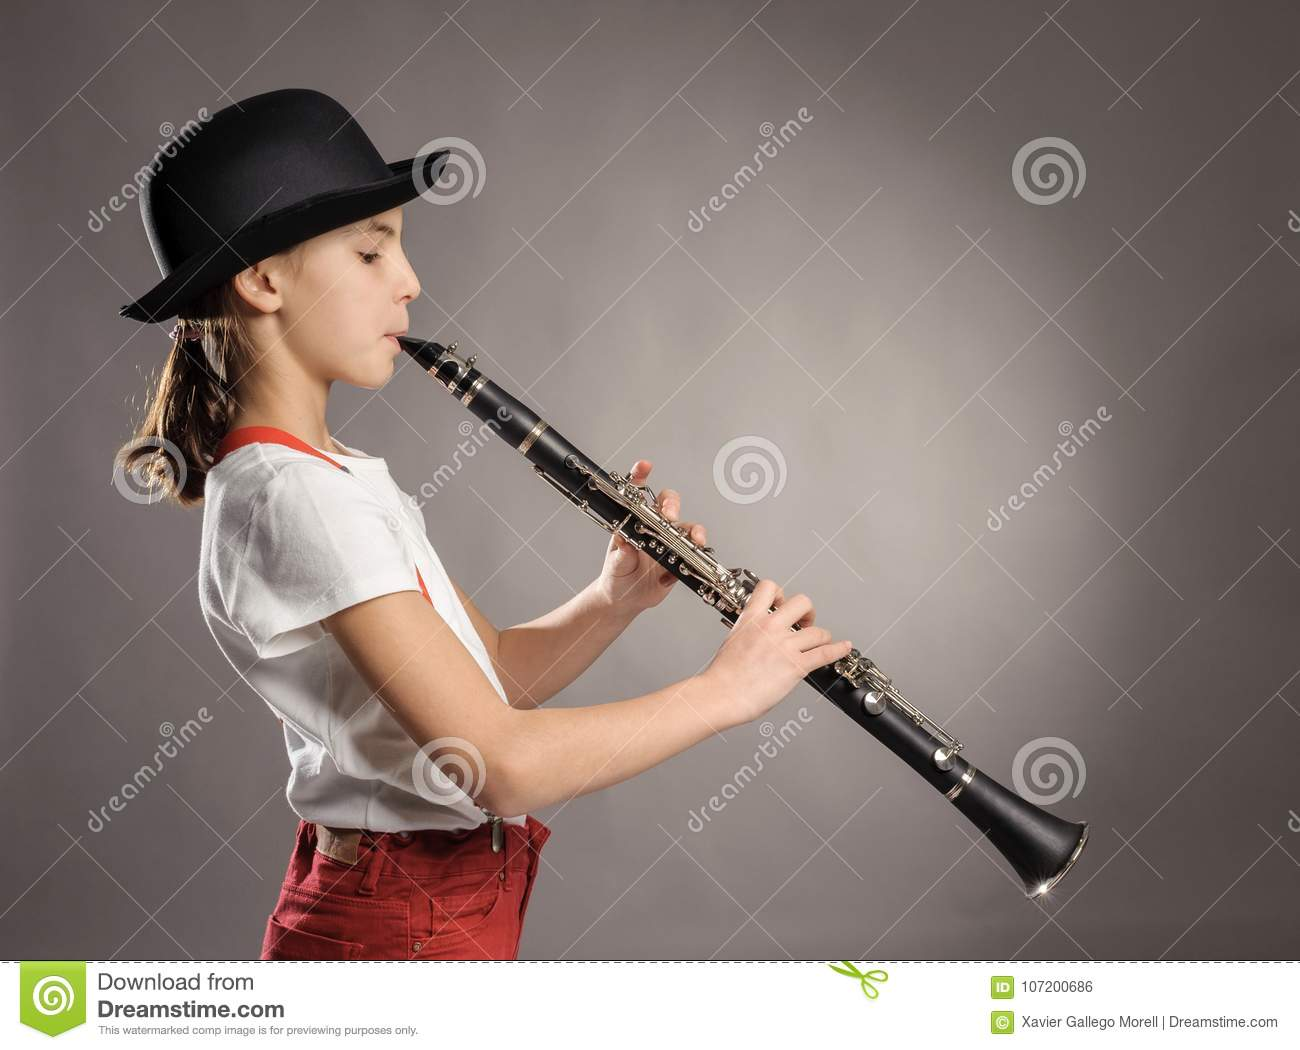 The Clarinet Polka A Novel Keith Maillard on Amazoncom FREE shipping on qualifying offers Author Keith Maillard received critical acclaim with his novel